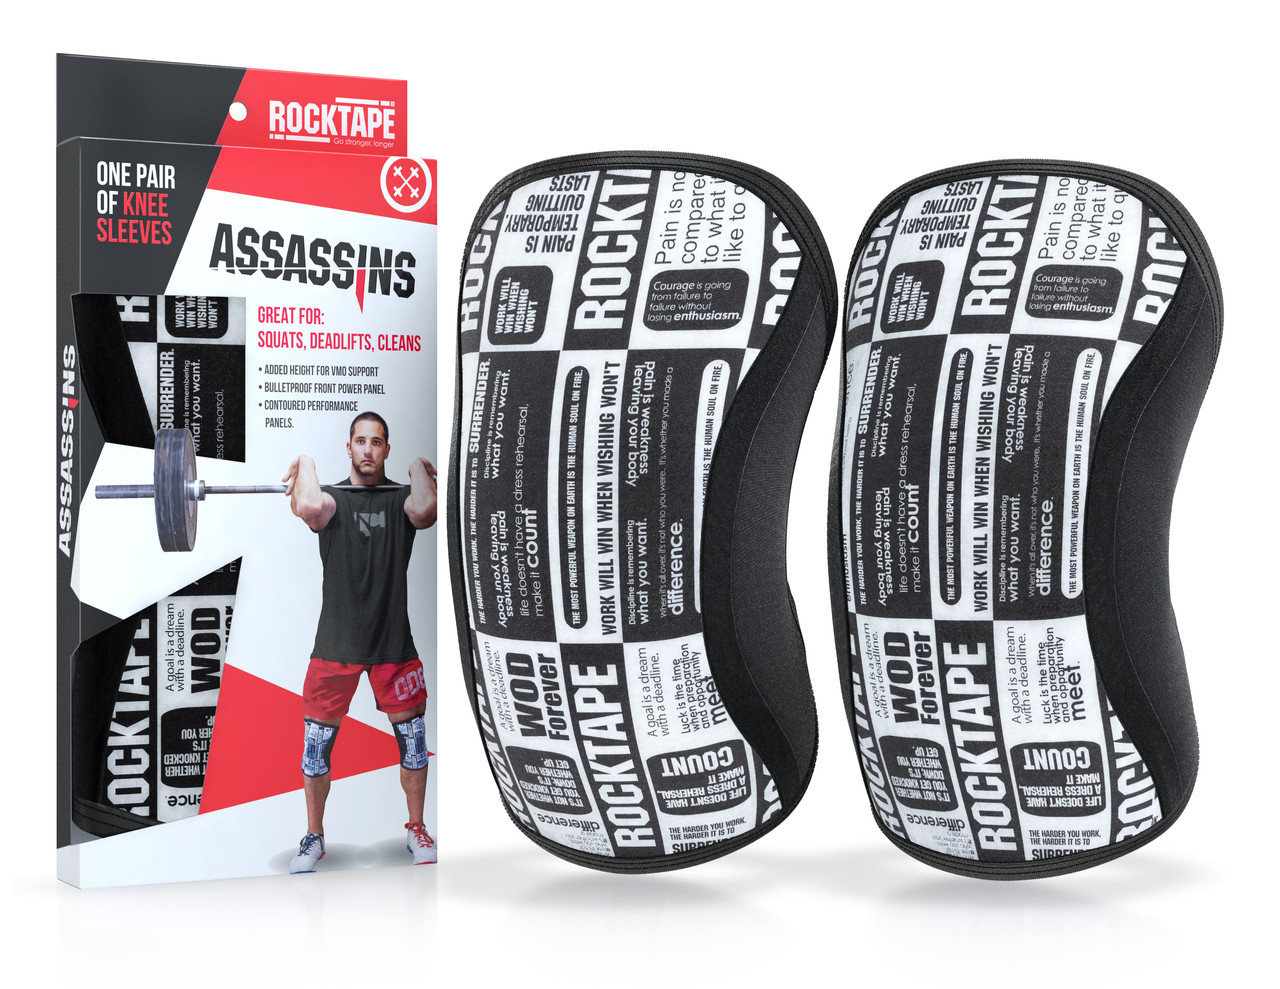 6efd129e38d45 RockTAPE Assassins® Manifesto Knee Sleeves - Knee Support & Protection Caps  5mm or 7mm